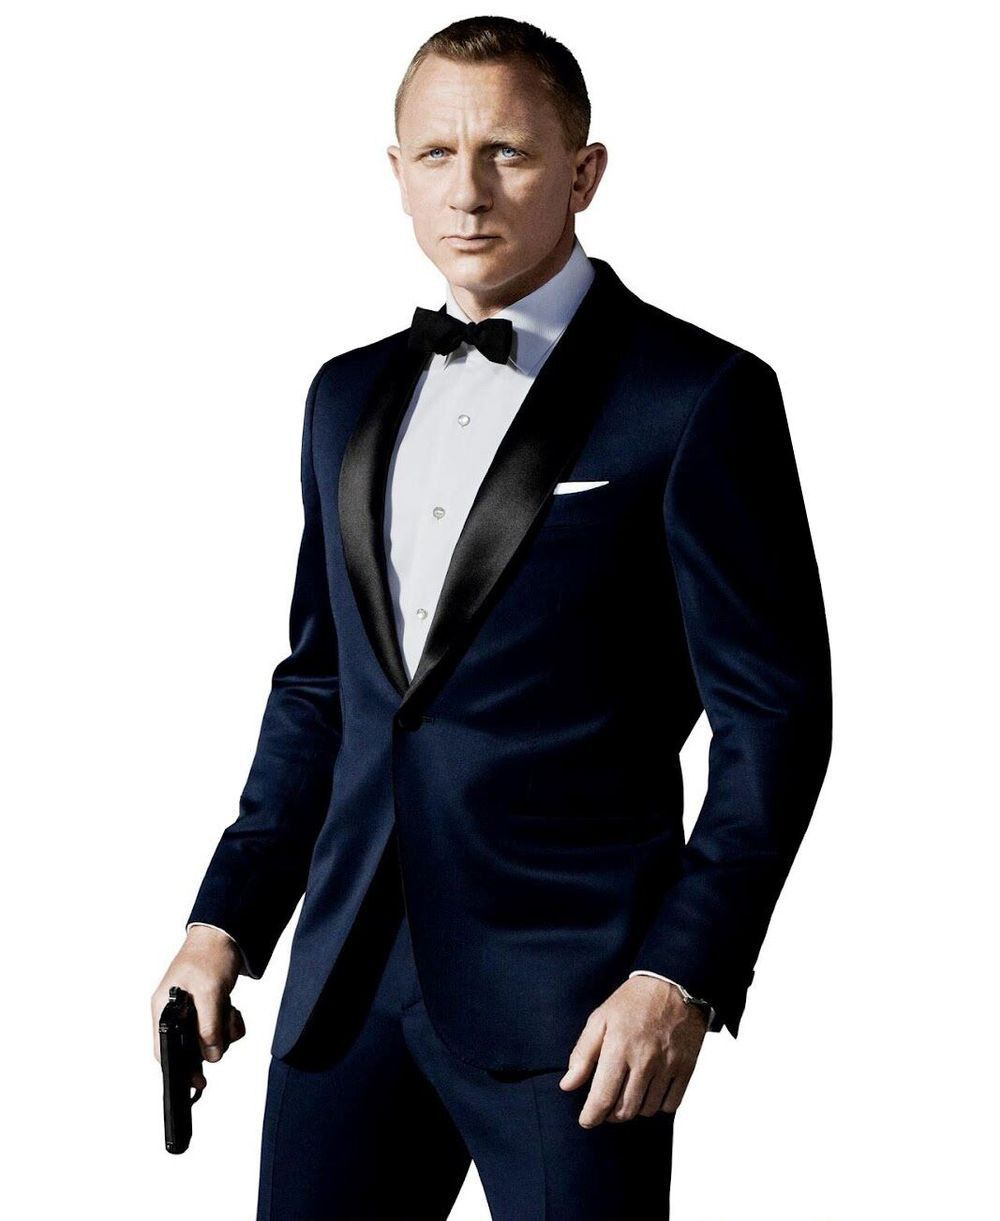 Groom Tuxedos Prom Wedding Suit (Jacket+Pants+Bow Tie ...